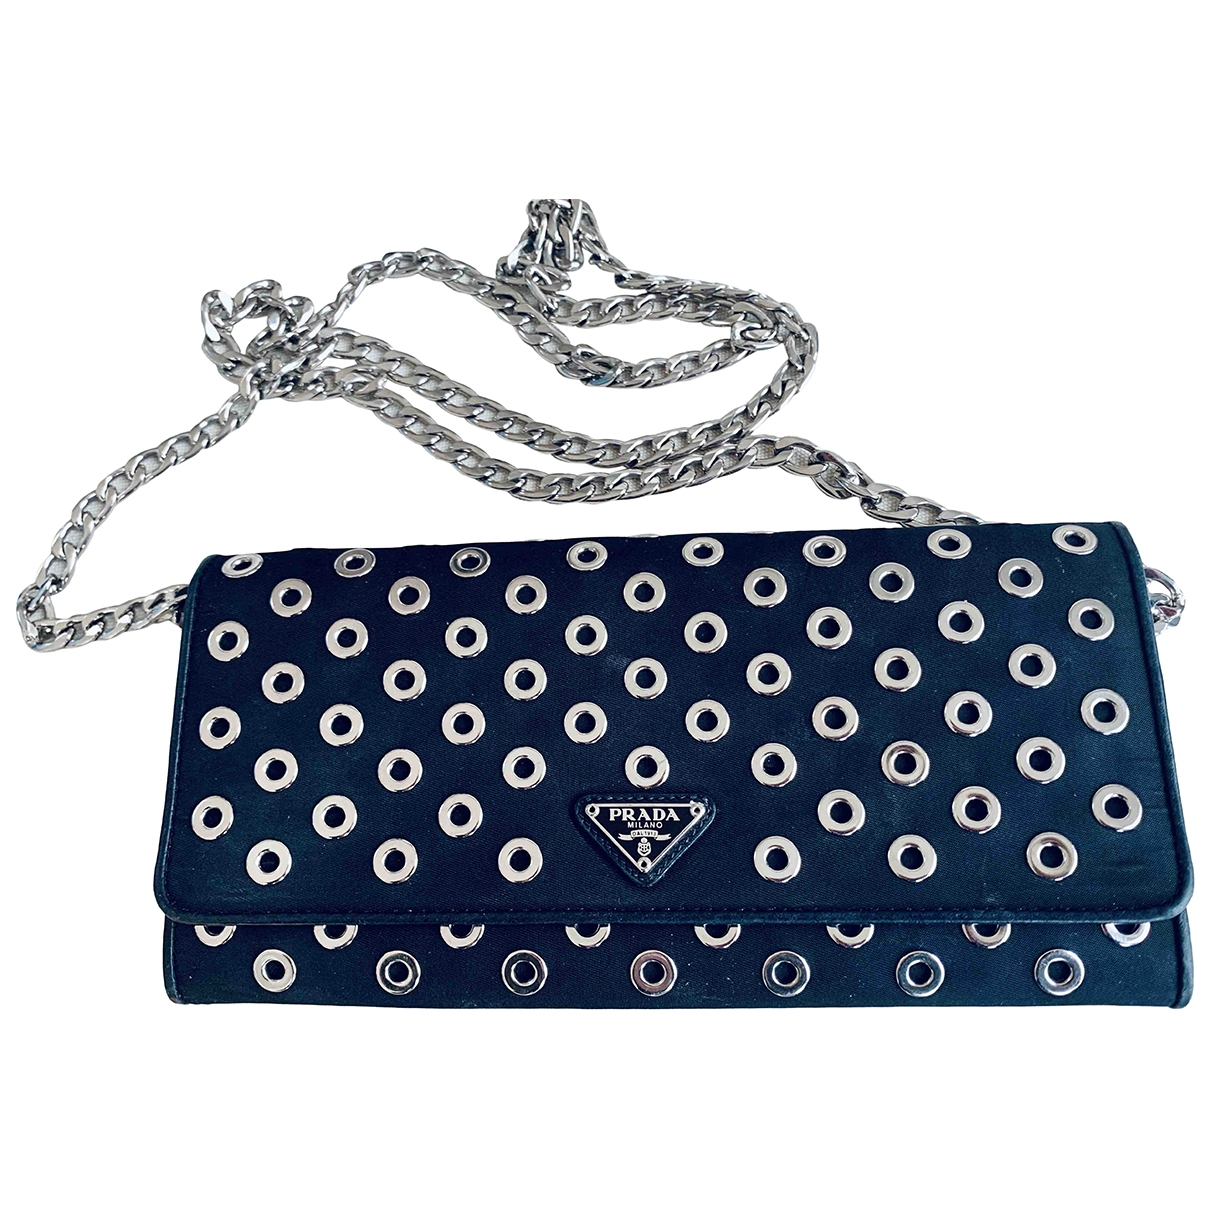 Prada \N Black Cloth Clutch bag for Women \N